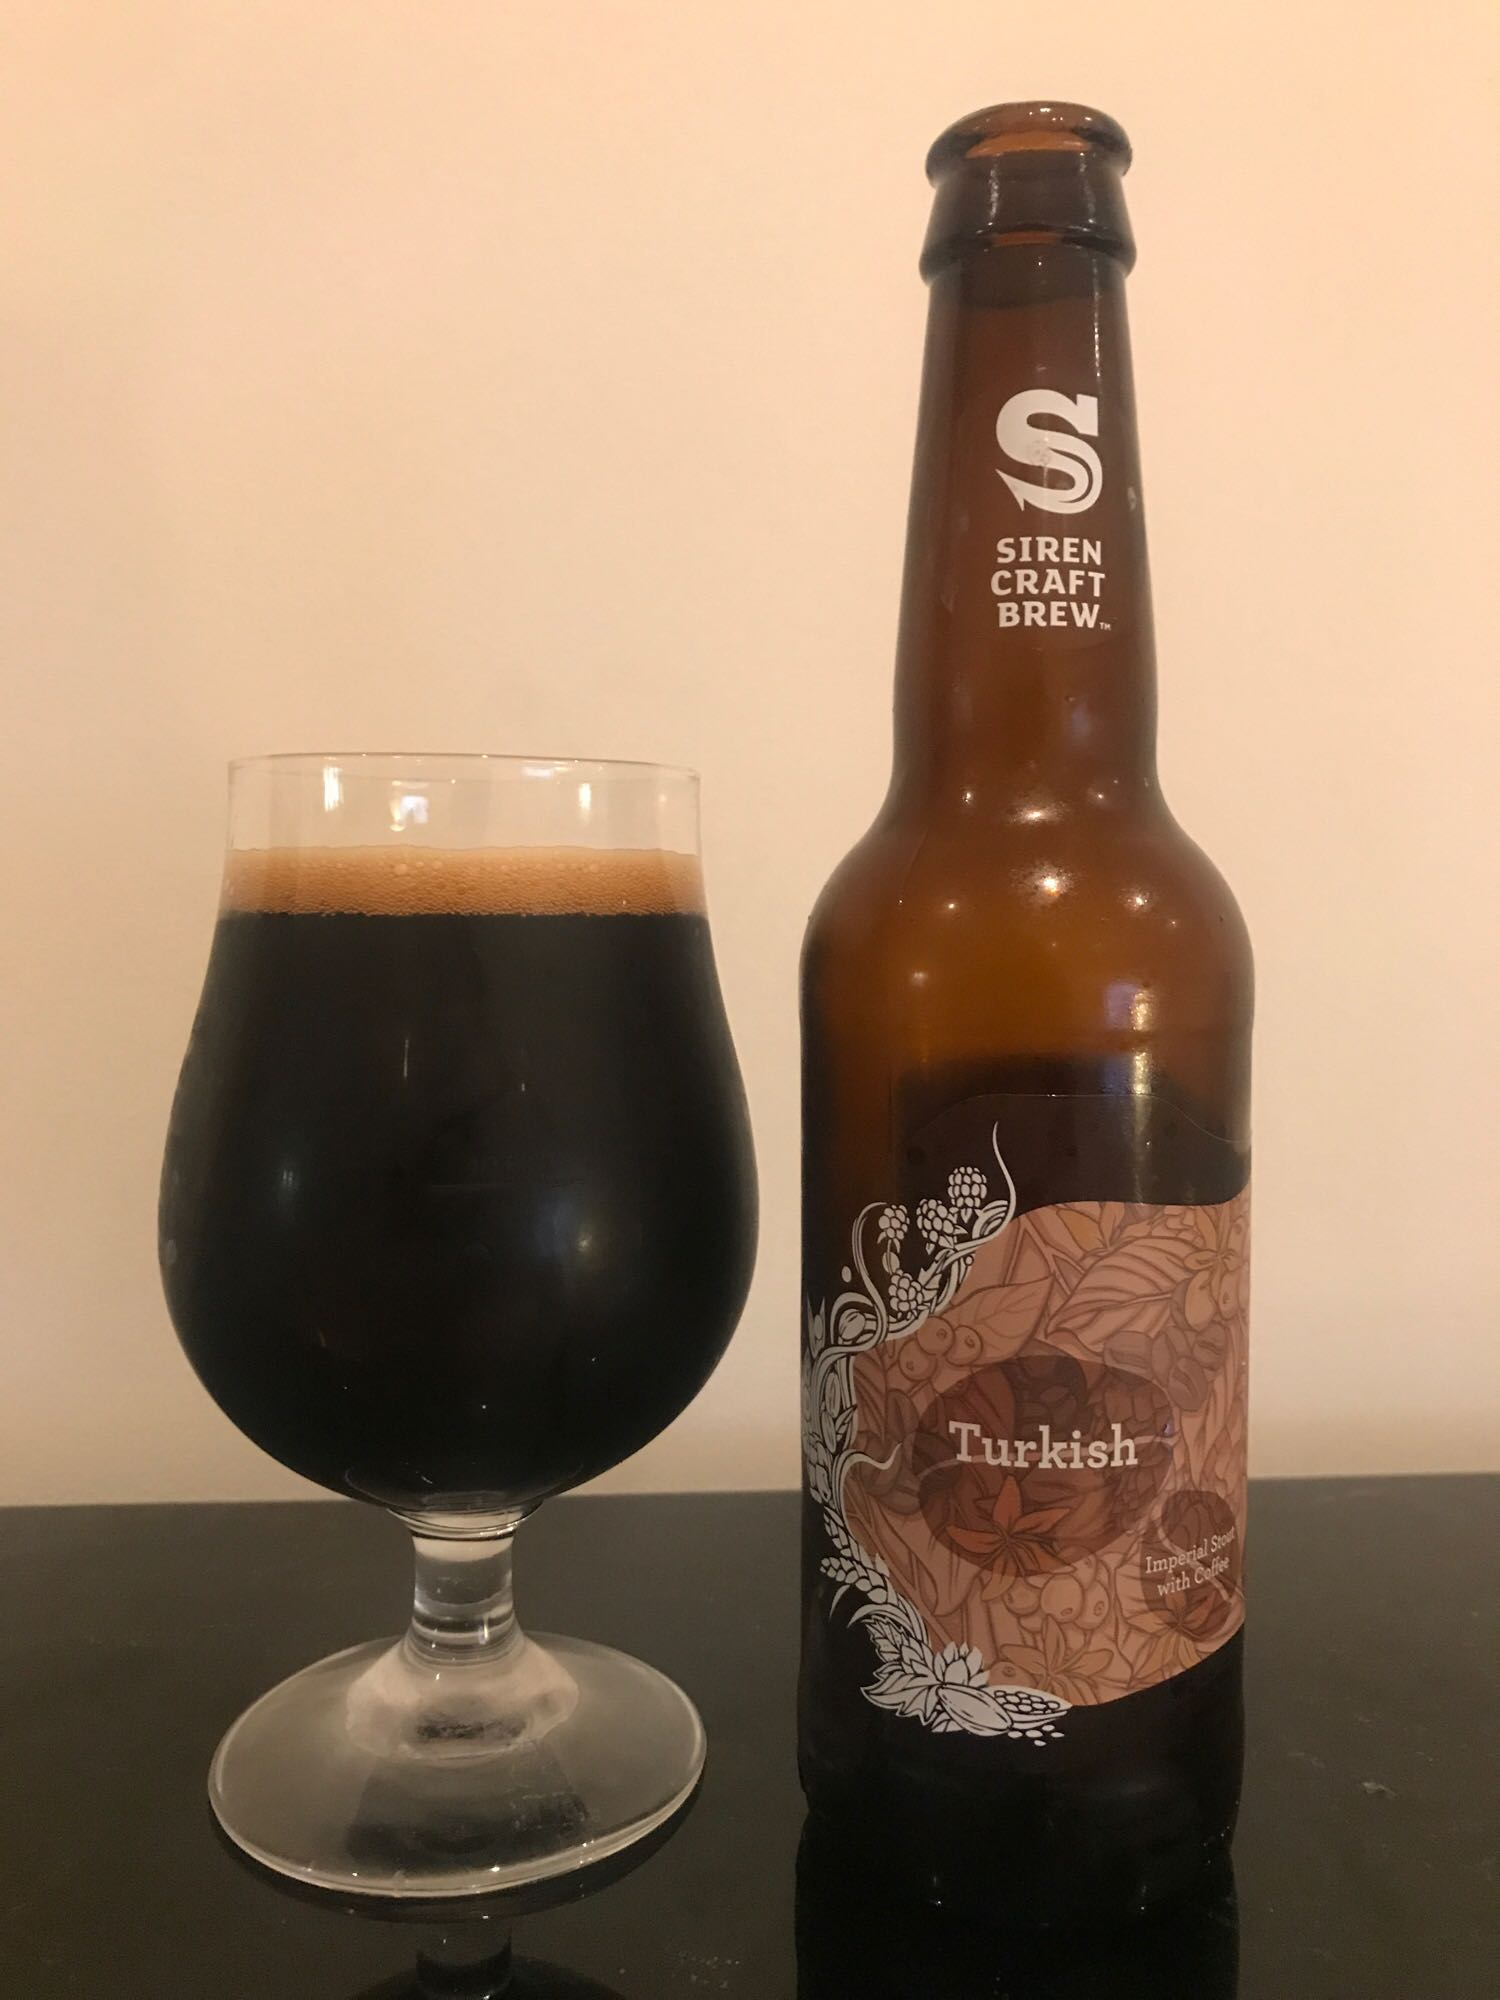 Turkish – 10% Indulgent Imperial Stout with Coffee - What Siren says: Turkish is inspired by the country's robust coffee traditionally served with a piece of rock candy. 45kg of Thai coffee beans, roasted by Reading's Tamp Culture Coffee, are added at three different brewing intervals. The brew also includes the addition of vanilla and orange zest in the spinbot, orange zest and nutmeg in the whirlpool and an incredible 420kg of figs to the fermented beer! The result is lovely smooth spicy notes, a nice citrus sweetness and a sound body.Expectation:Long-time readers of the blog will know that imperial stout is one of my favourite styles of beer. A spicy, citrus, coffee style impy stout has me weak at the knees. I fear it may be a while before I drink this as I have a fair few imperial stouts I need to get through first.Reality:This is bang on. It's exactly what you'd expect from a coffee heavy imperial stout. I didn't really get the citrus notes but the spice came through a little. All in all it is a solid imperial stout and has the right thickness to give it a luxurious taste. Off to a good start. Hope the rest live up to this beginning.